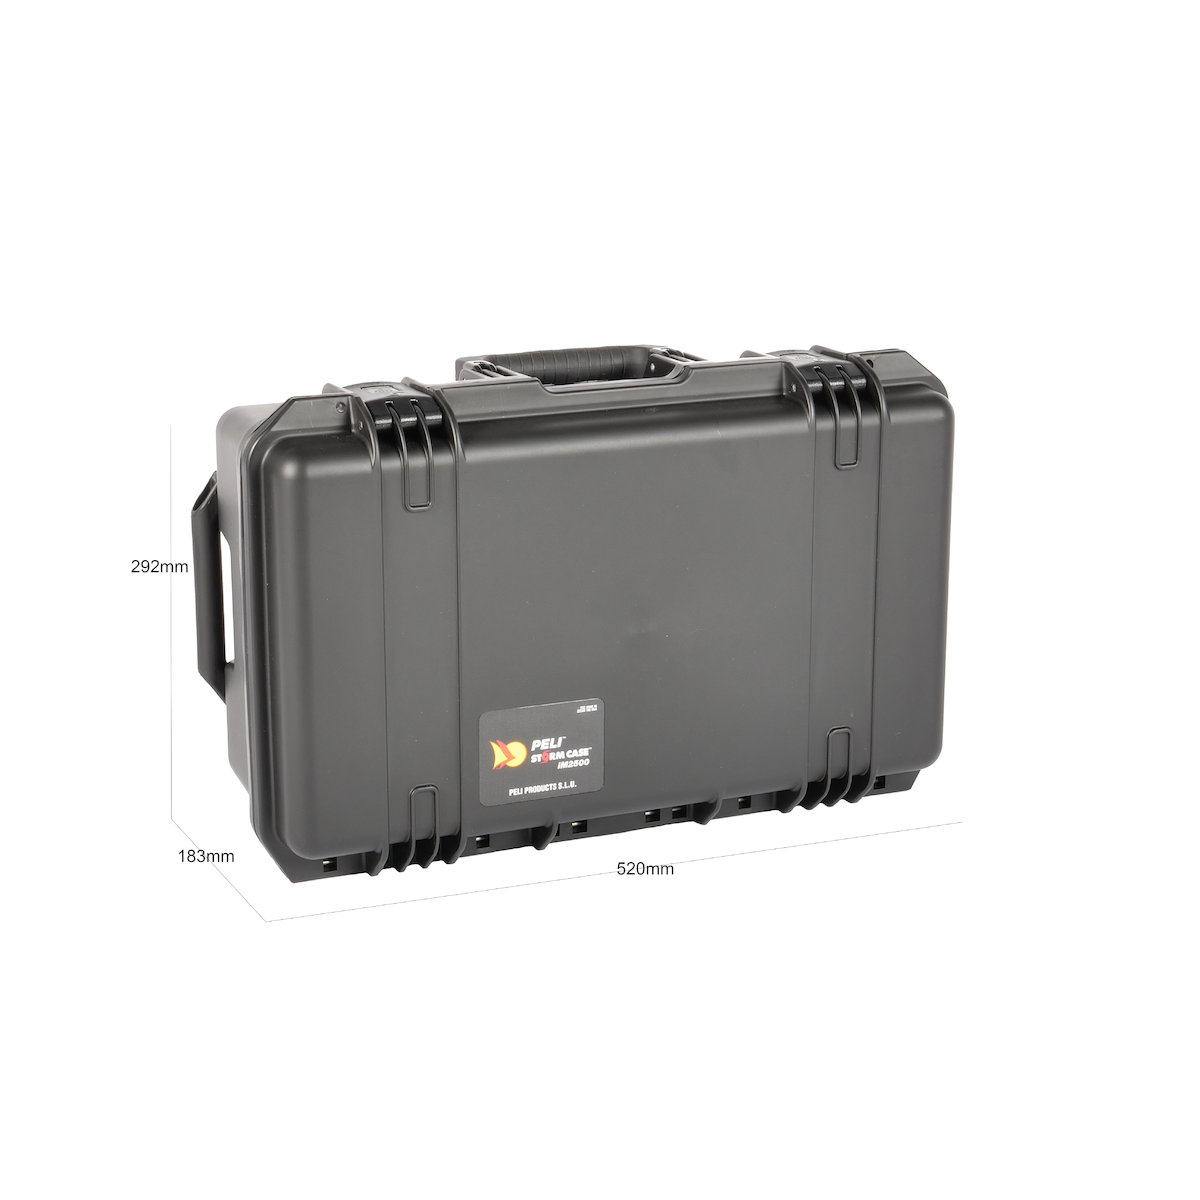 Peli Storm iM2500 Case Call 01902 764000 For Best Prices